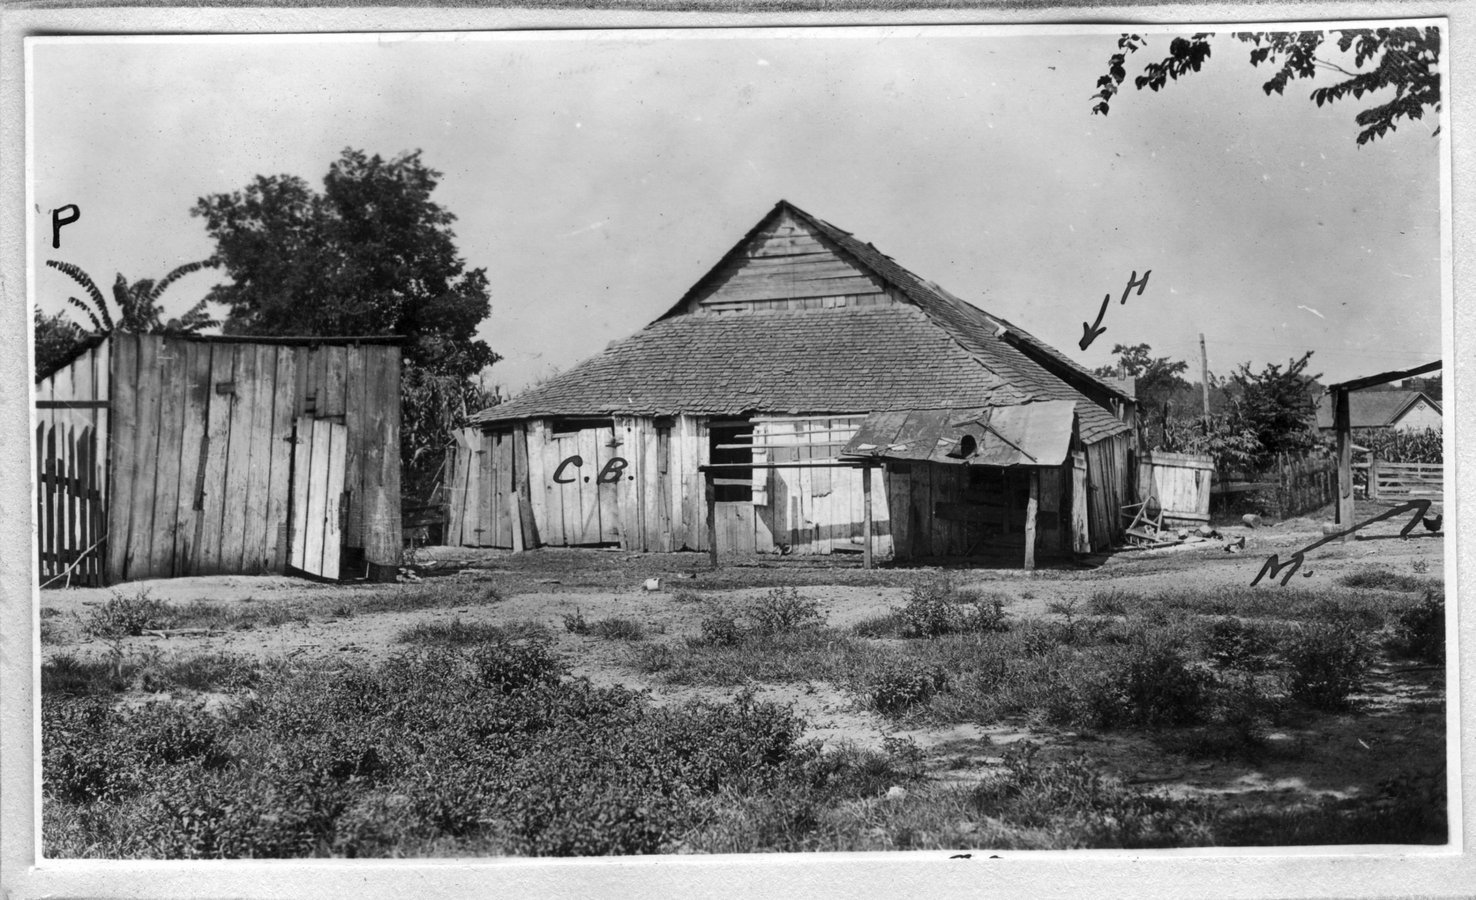 The Farm in 1924 -